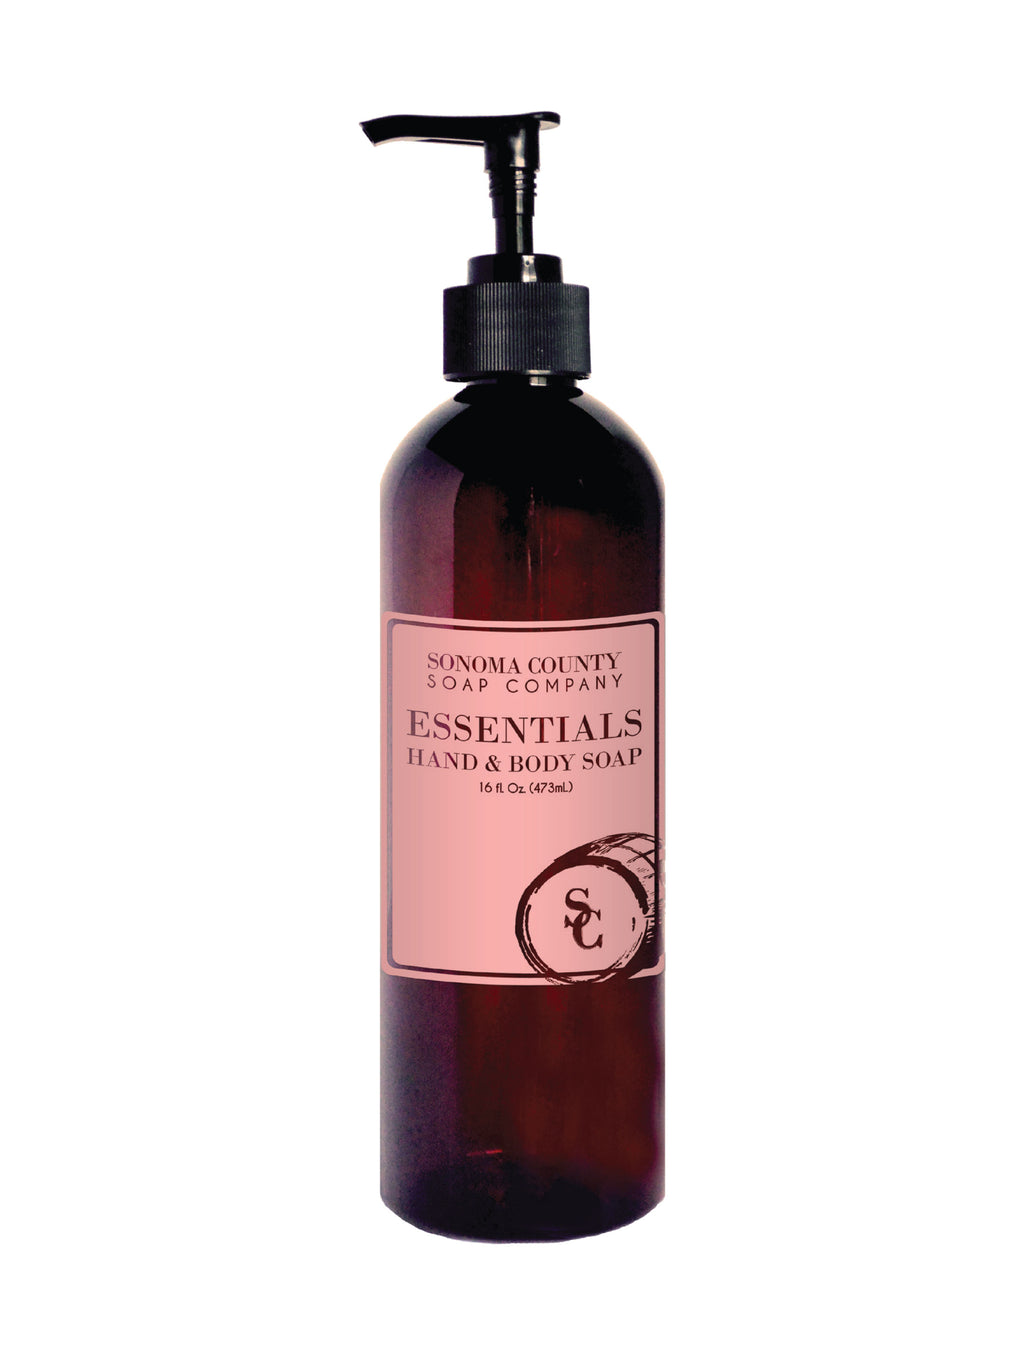 Essentials Hand & Body Soap - 16 oz.